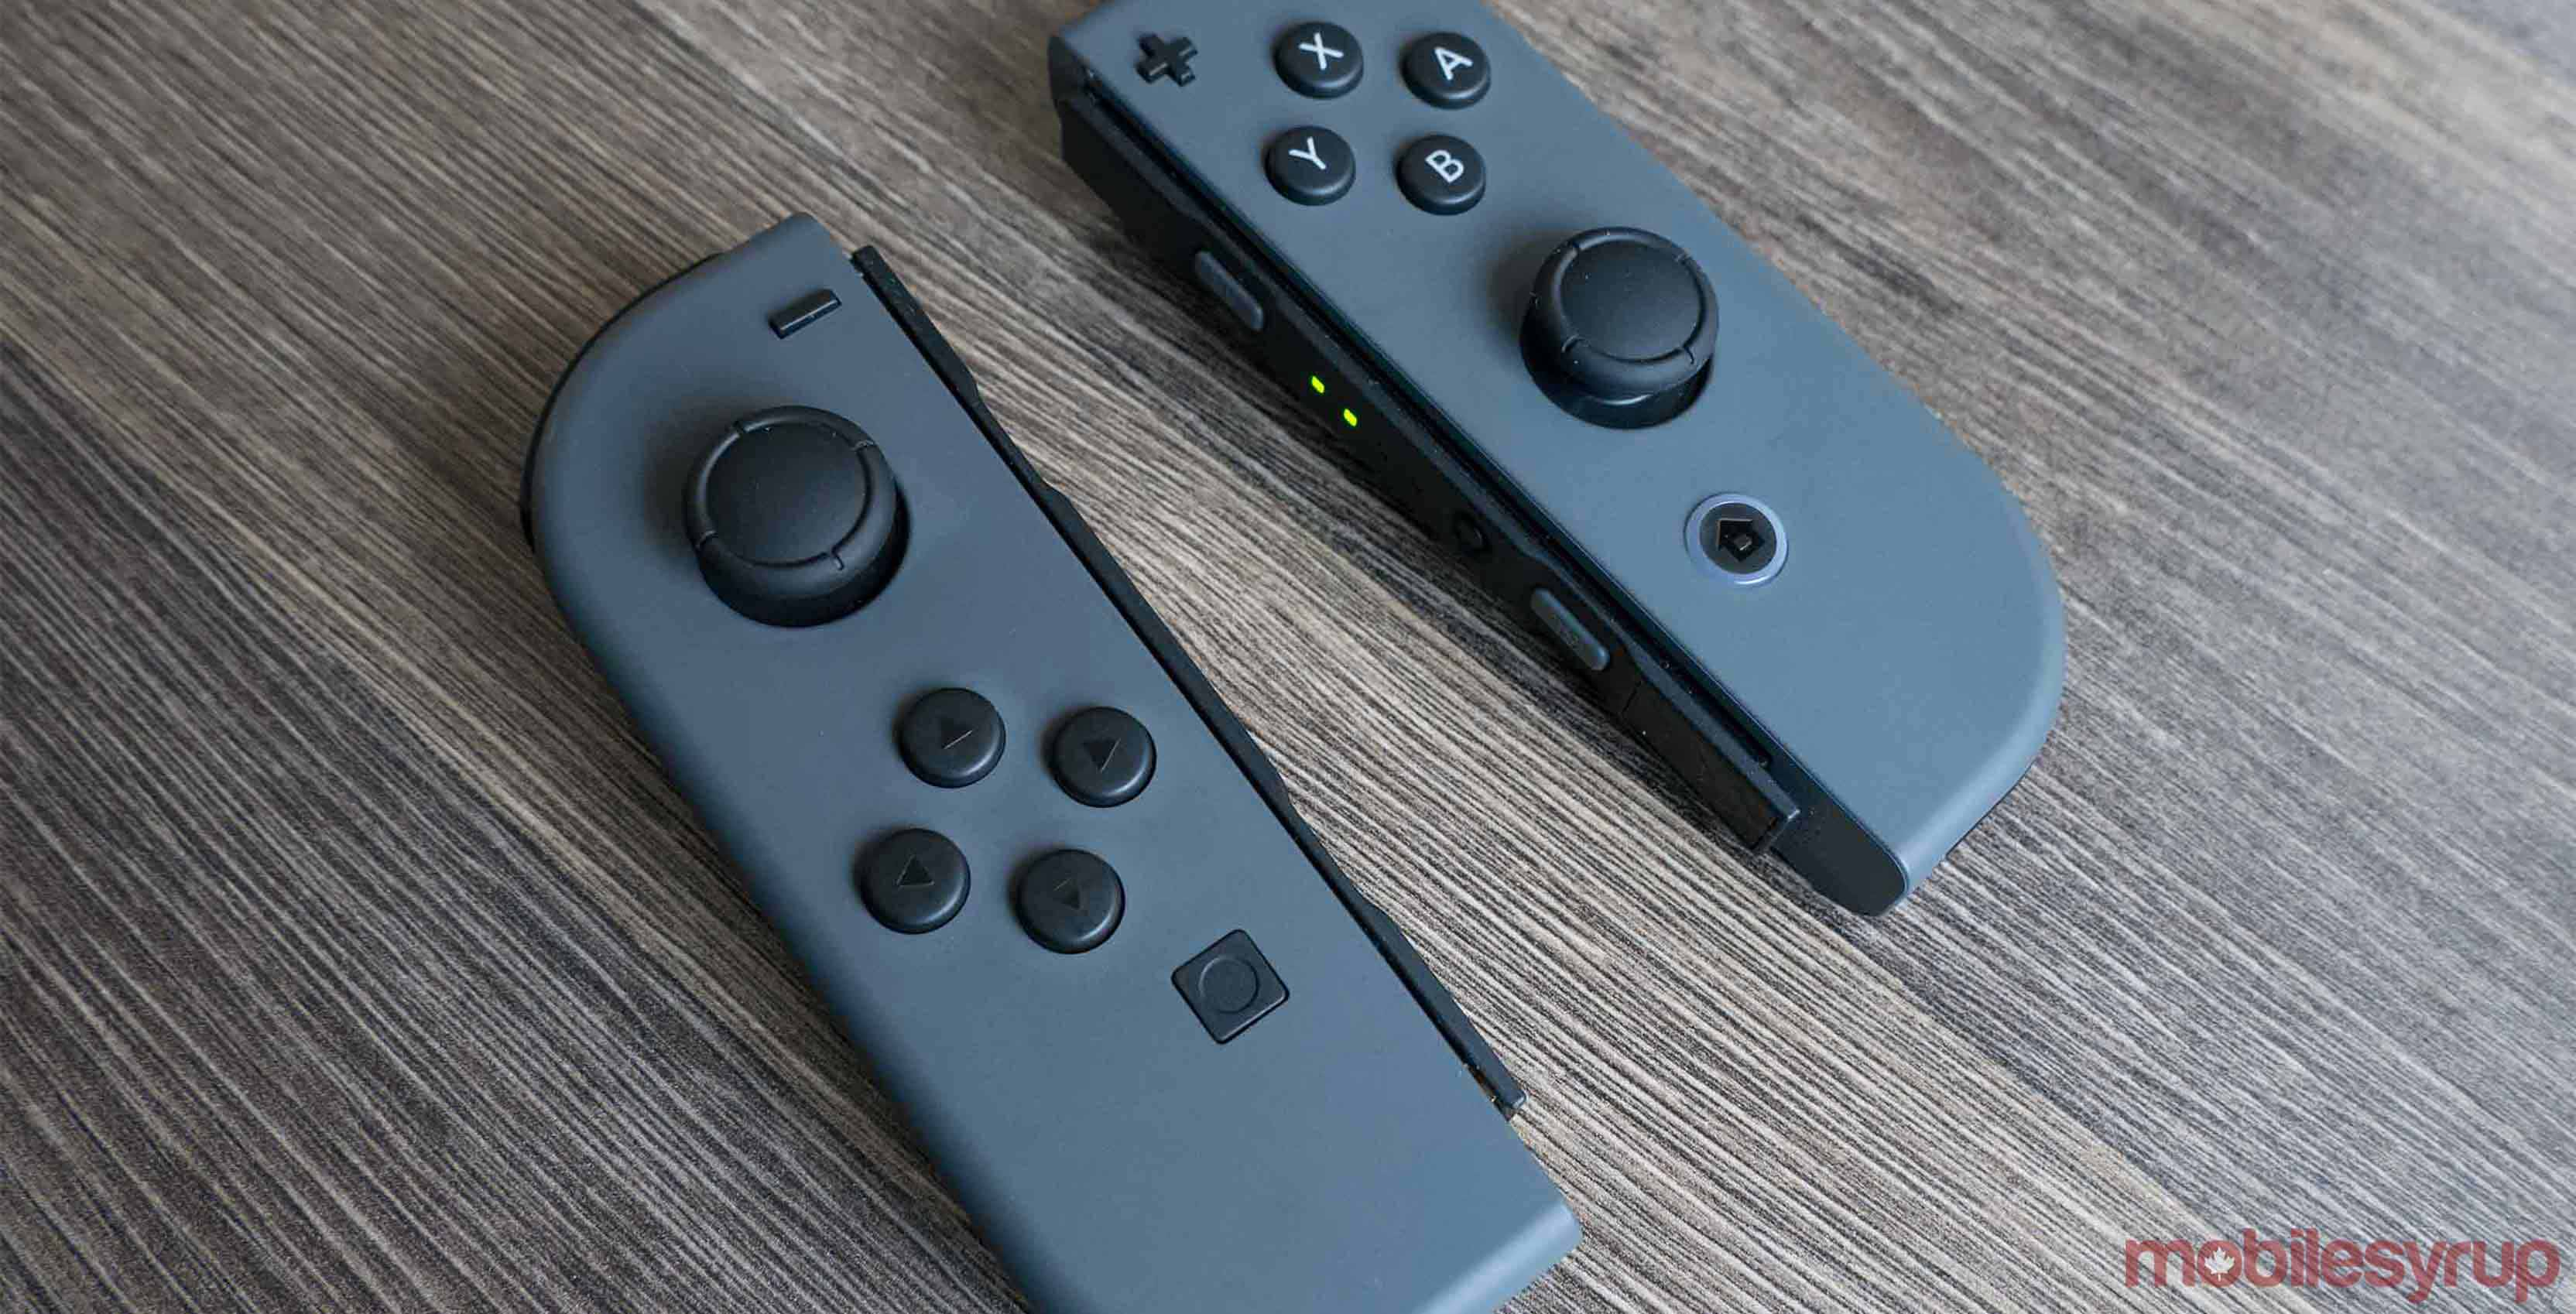 Nintendos Fix For Your Joy Con Woes Involves A Piece Of Foam Switch Joycon Left Right Grey Issues Possible